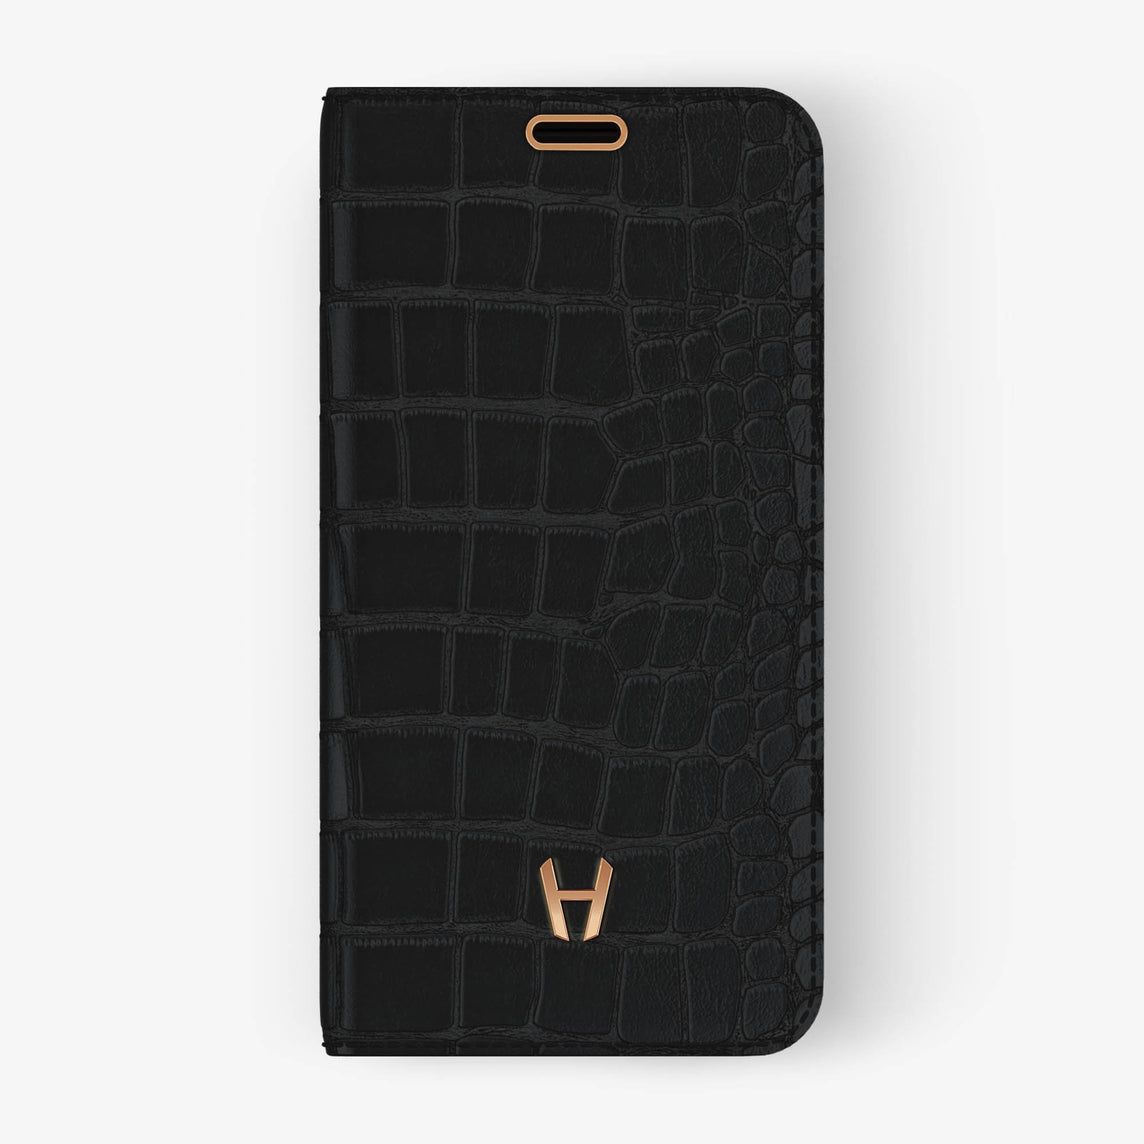 Alligator Folio Case iPhone X/Xs | Phantom Black - Rose Gold without-personalization